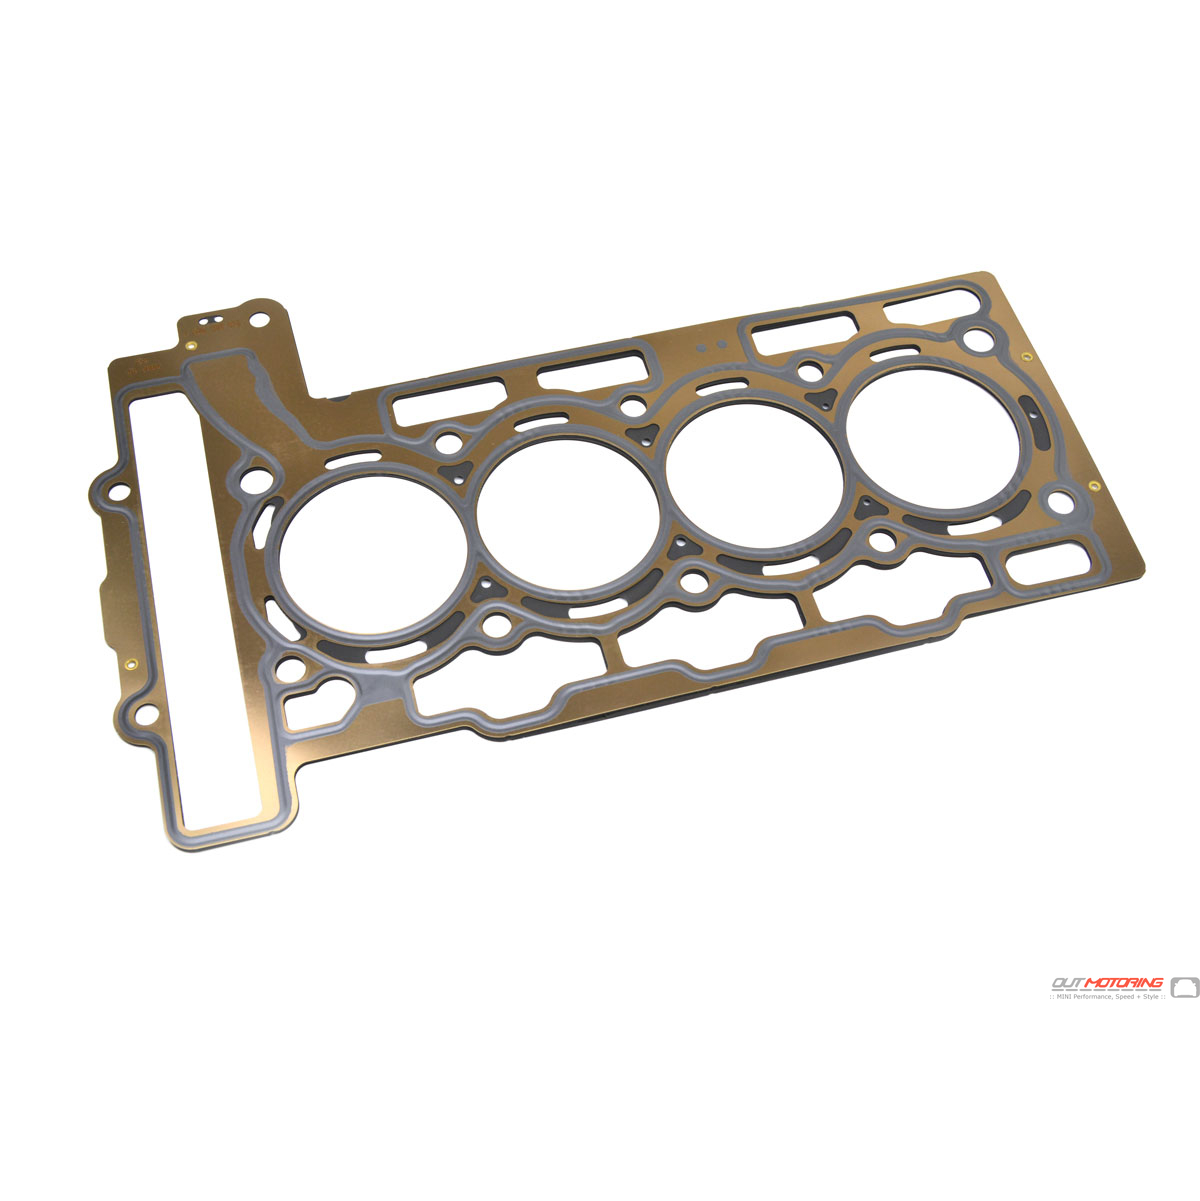 Where To Buy Cylinder Head Seal: 11127586908 MINI Cooper Cylinder Gasket